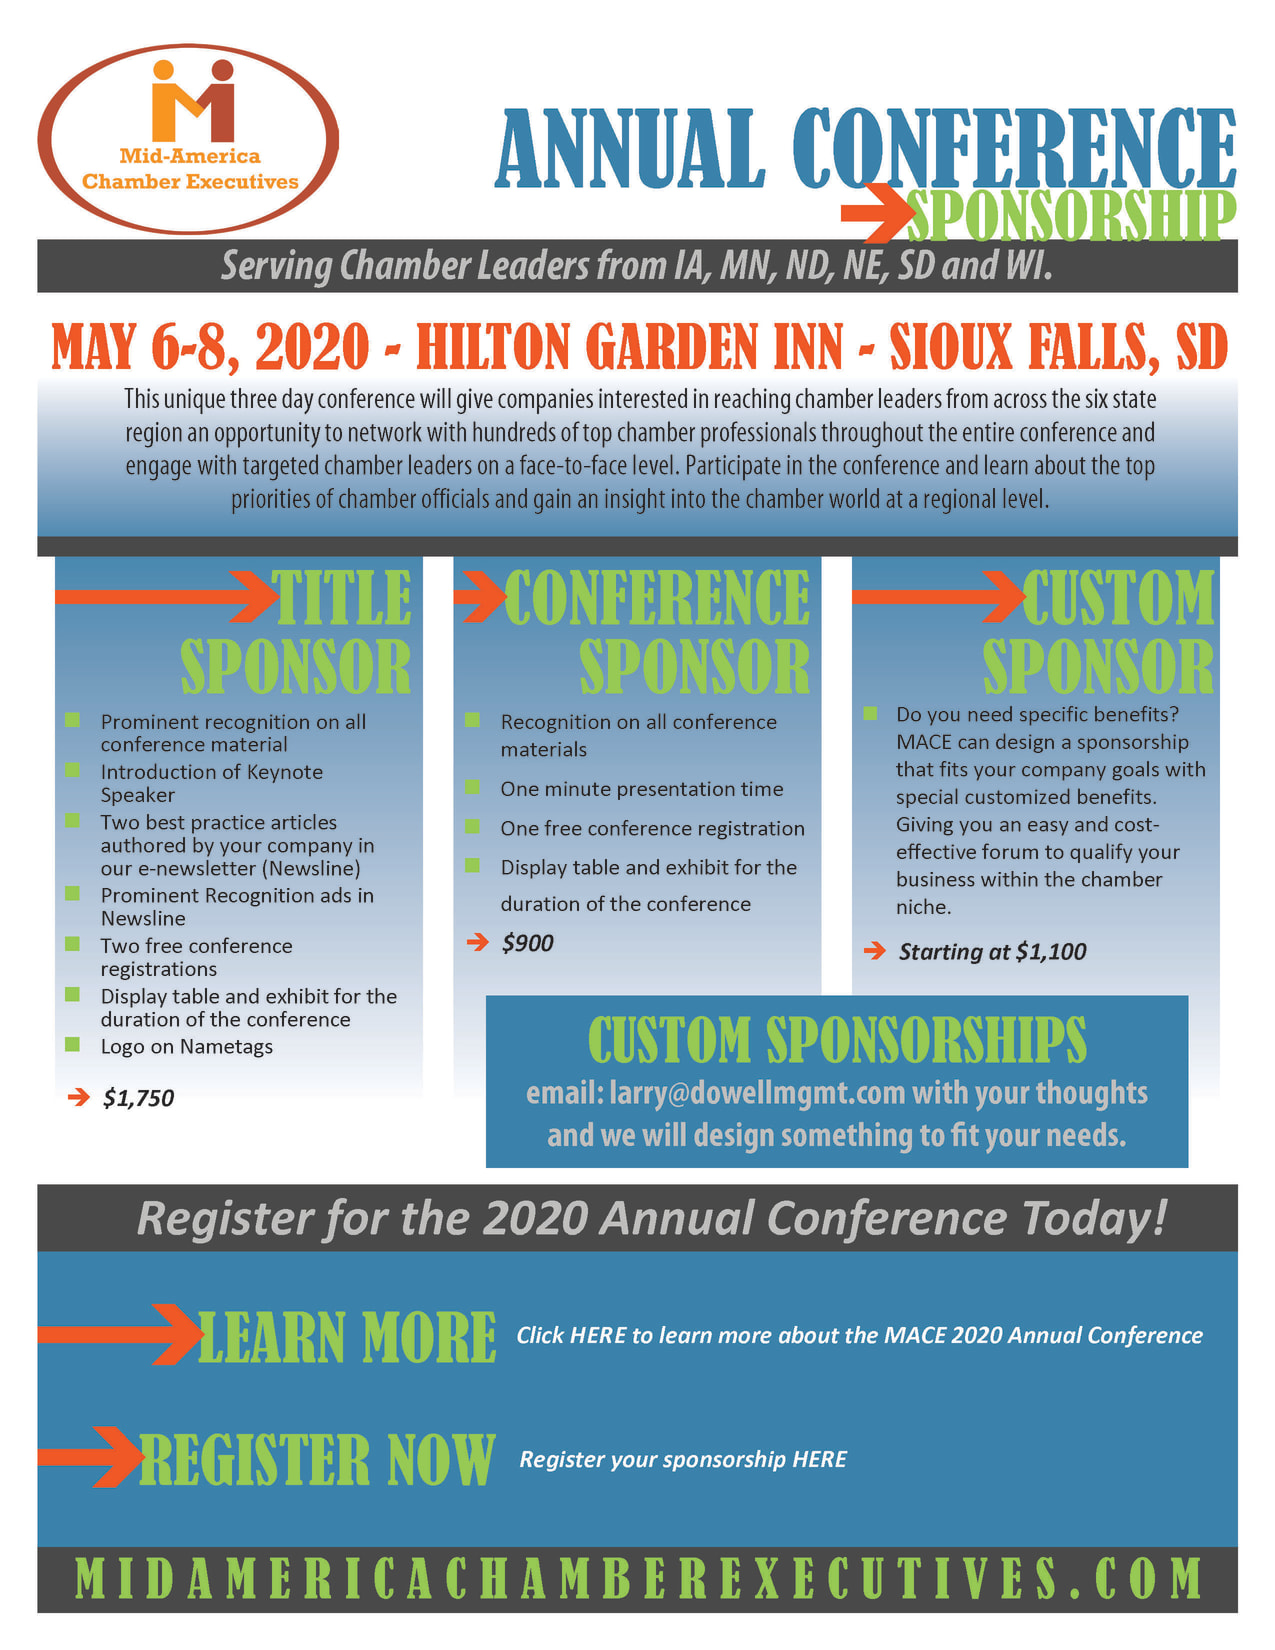 MACE_2019ConferenceSponsorshipFlyer-(LINKS)-(Email)-w1275.jpg